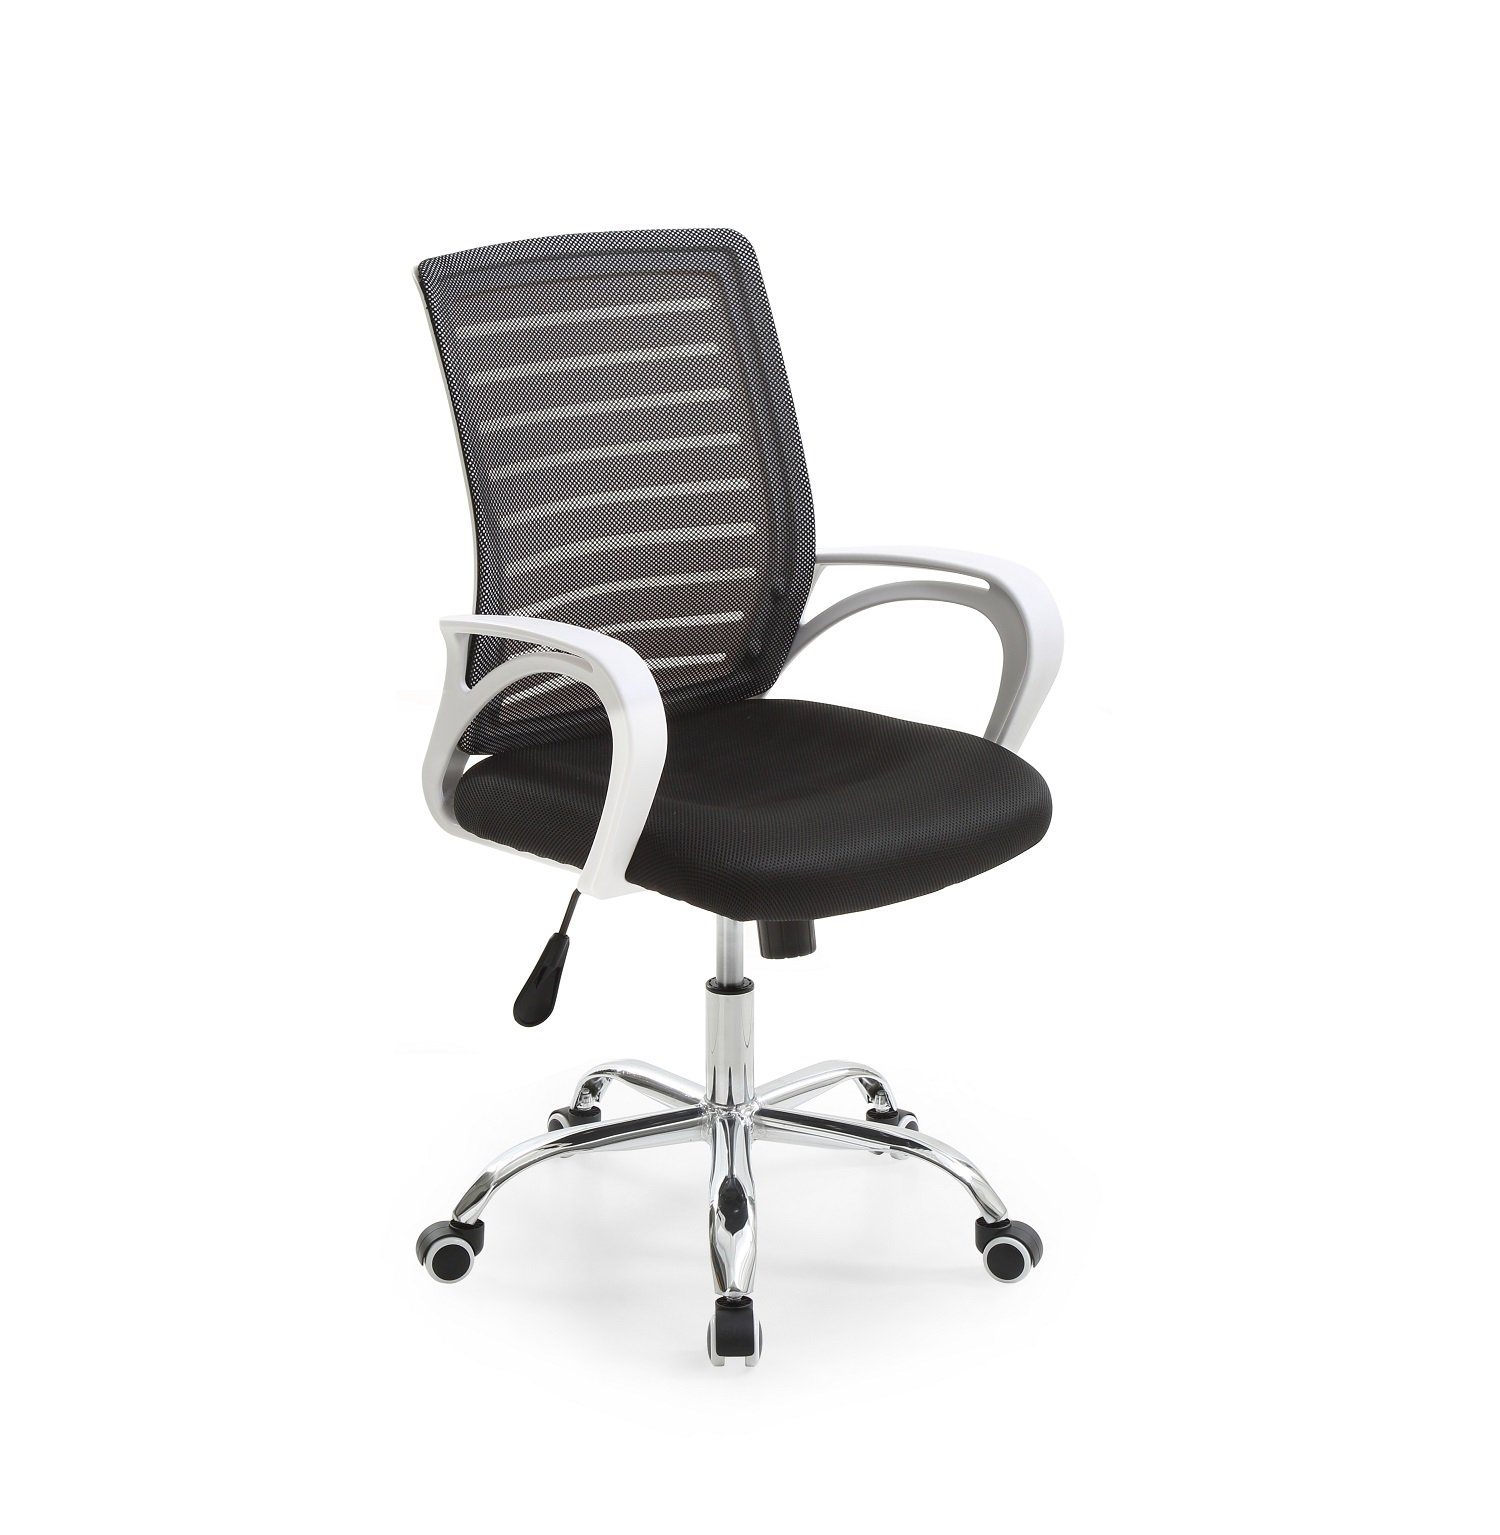 Hodedah Mesh Office Chair with Adjustable Height, Swivel Functionality and Arms, Black